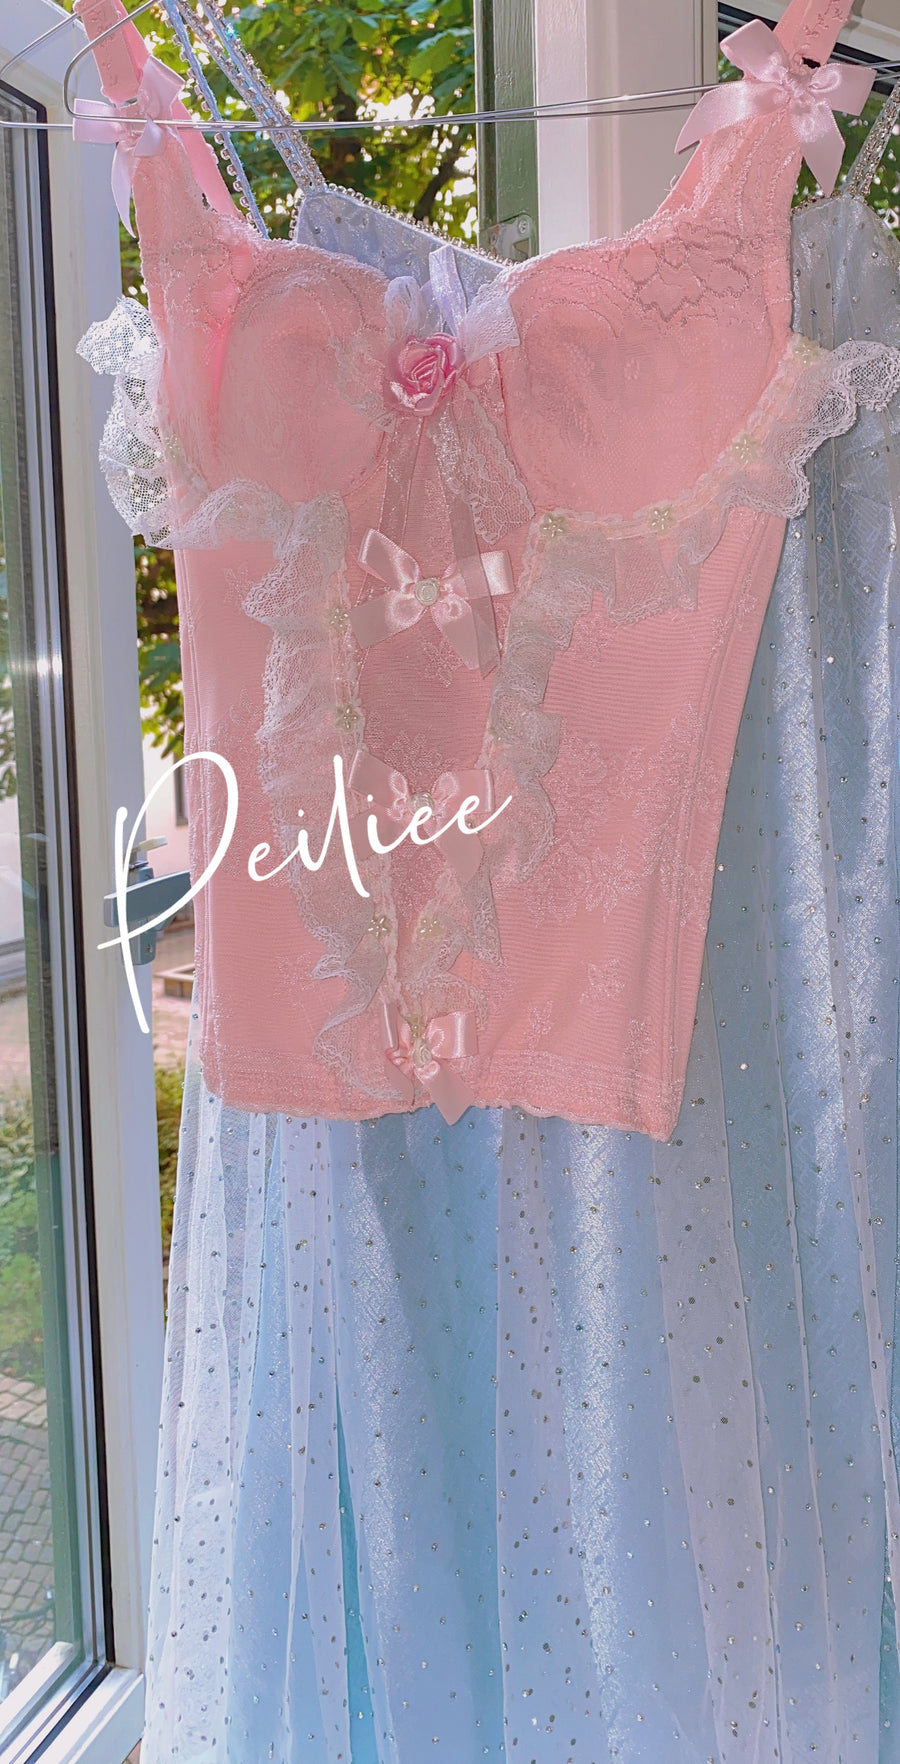 [Premium Selected] Crystal Fairy Diamond Dress - Peiliee Shop